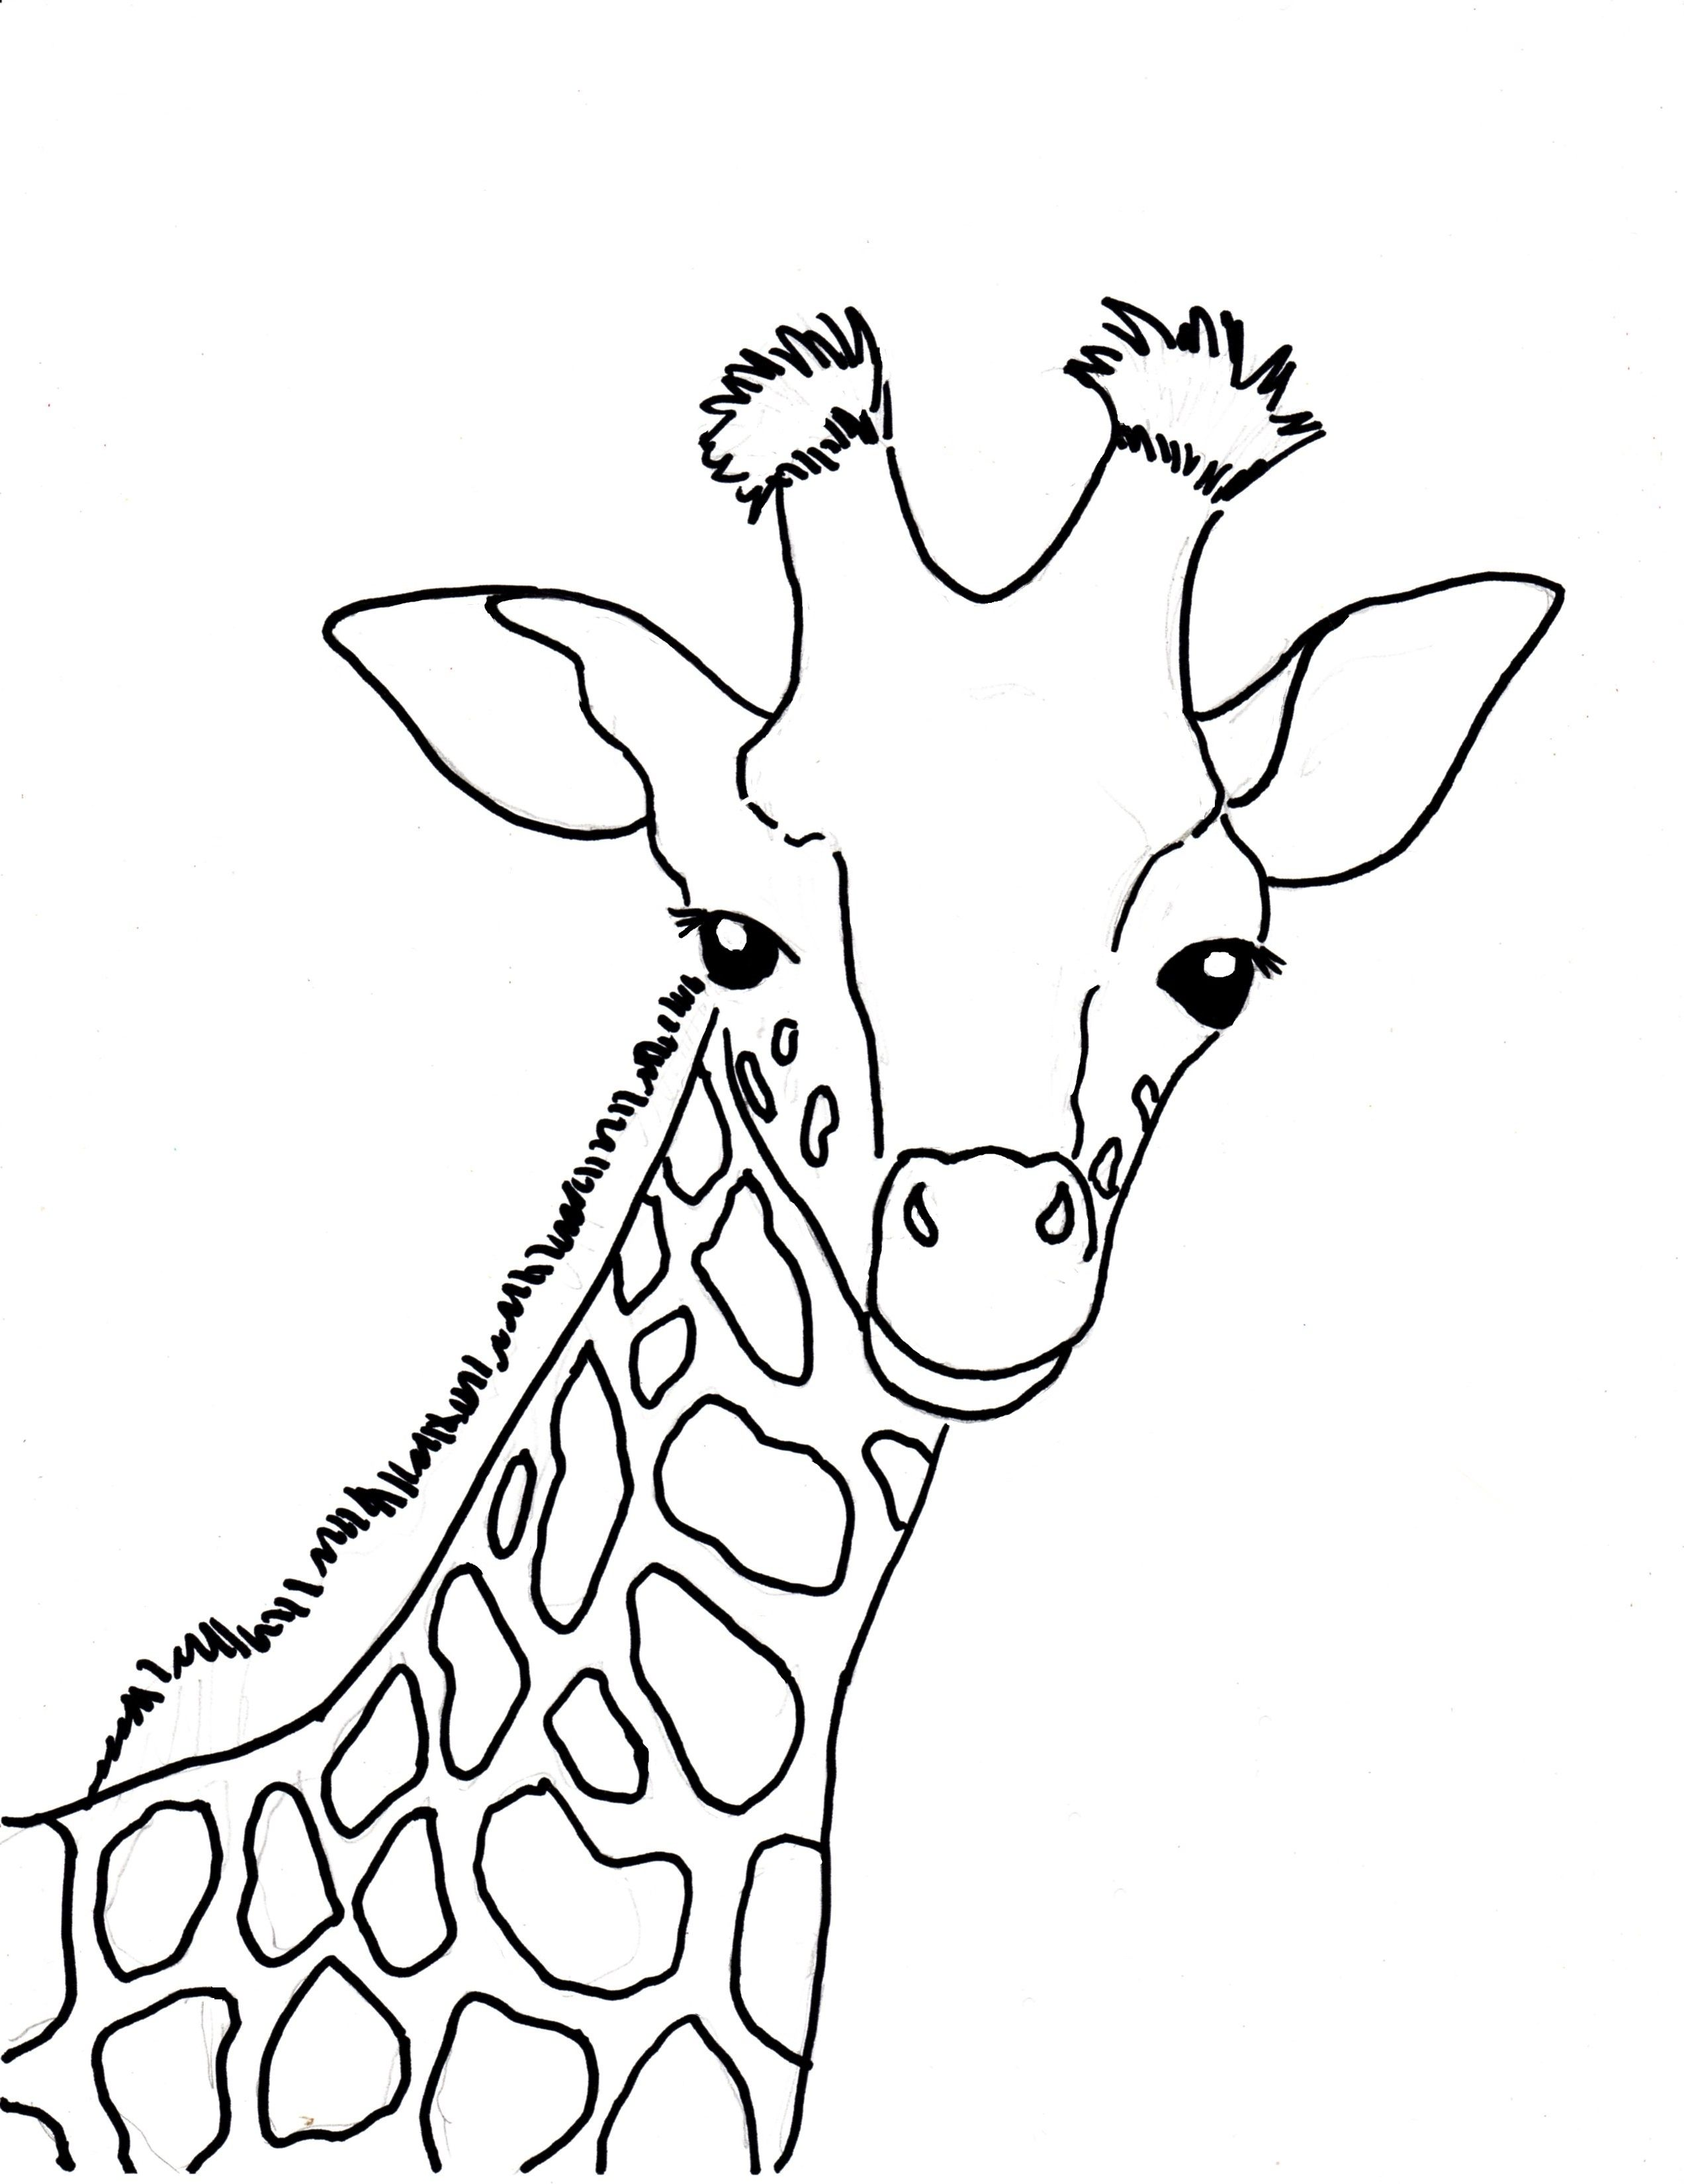 21 Exclusive Picture Of Giraffe Coloring Pages Giraffe Drawing